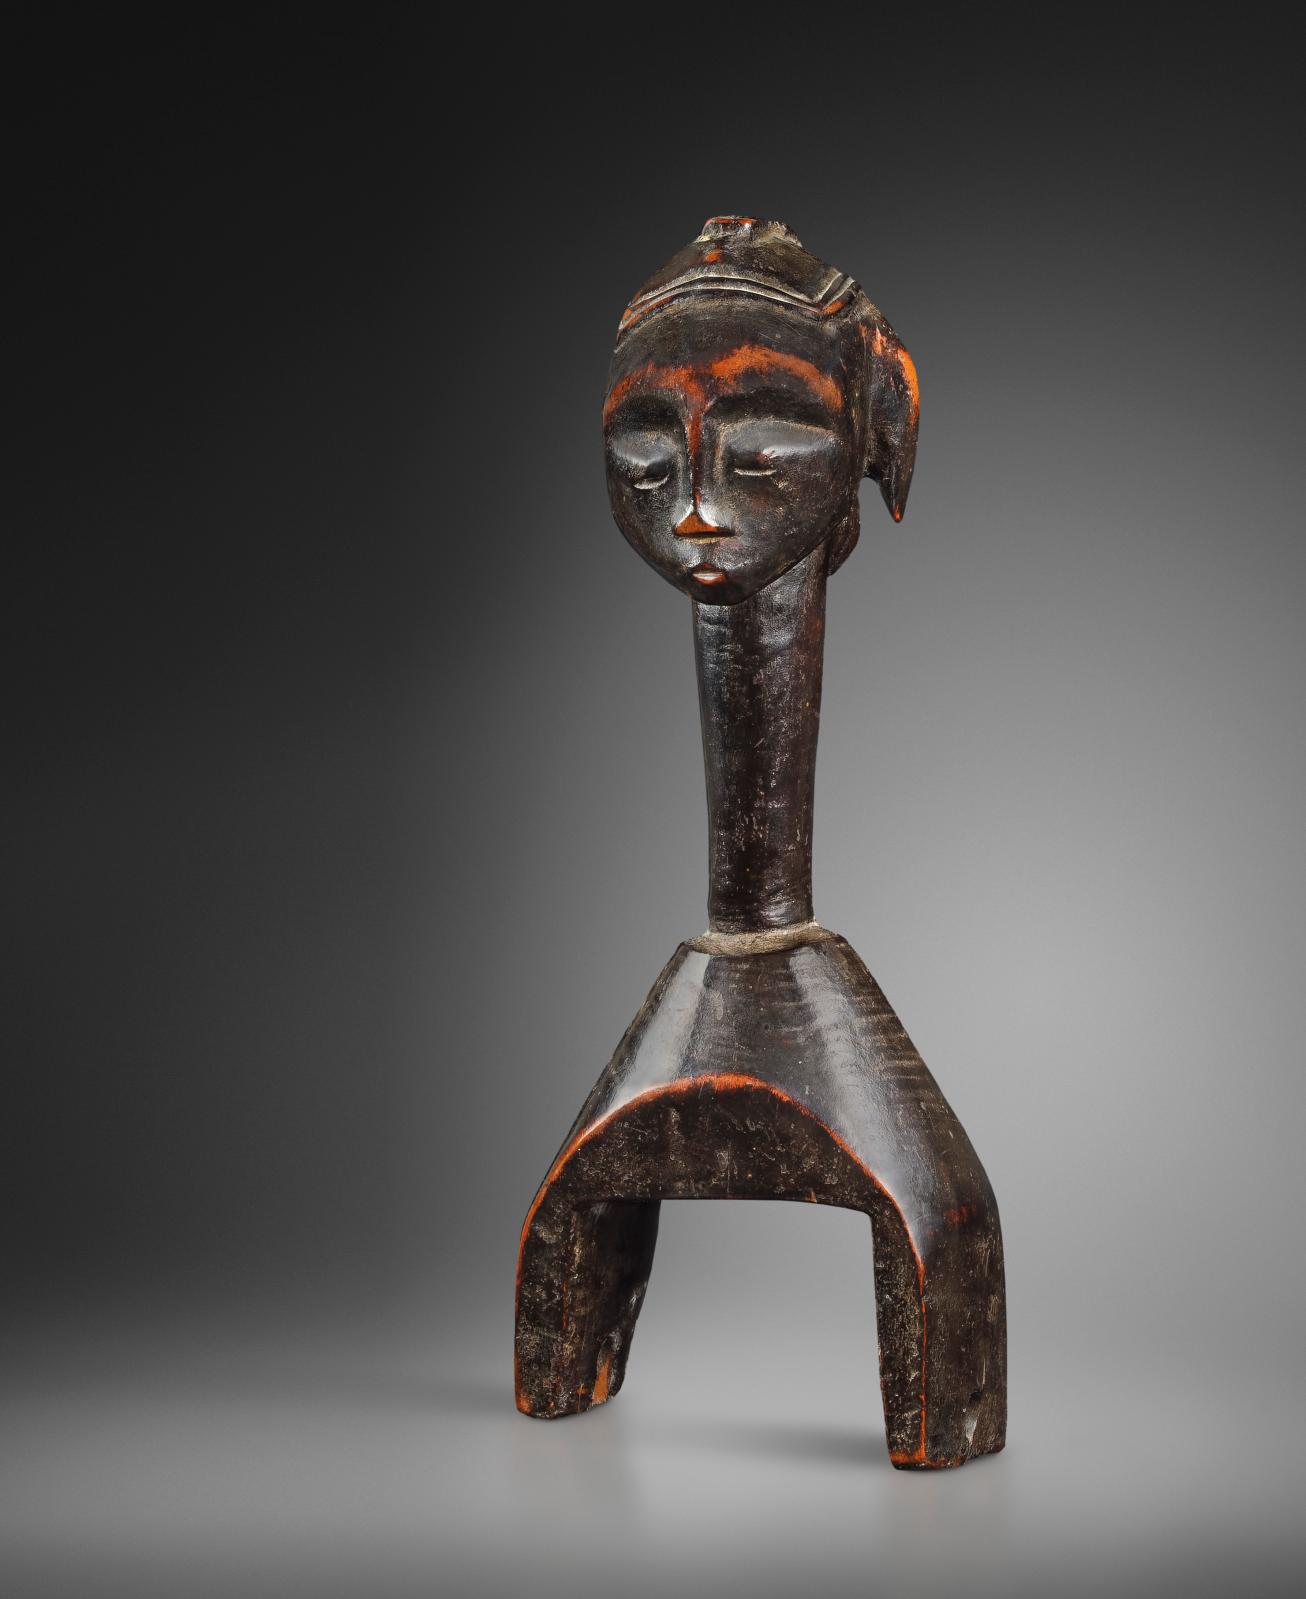 Gouro culture, Côte d'Ivoire, 20th century, pulley, wood, antique shiny black worn patina, brown-red at the corners, h. 20.5 cm. Galerie D